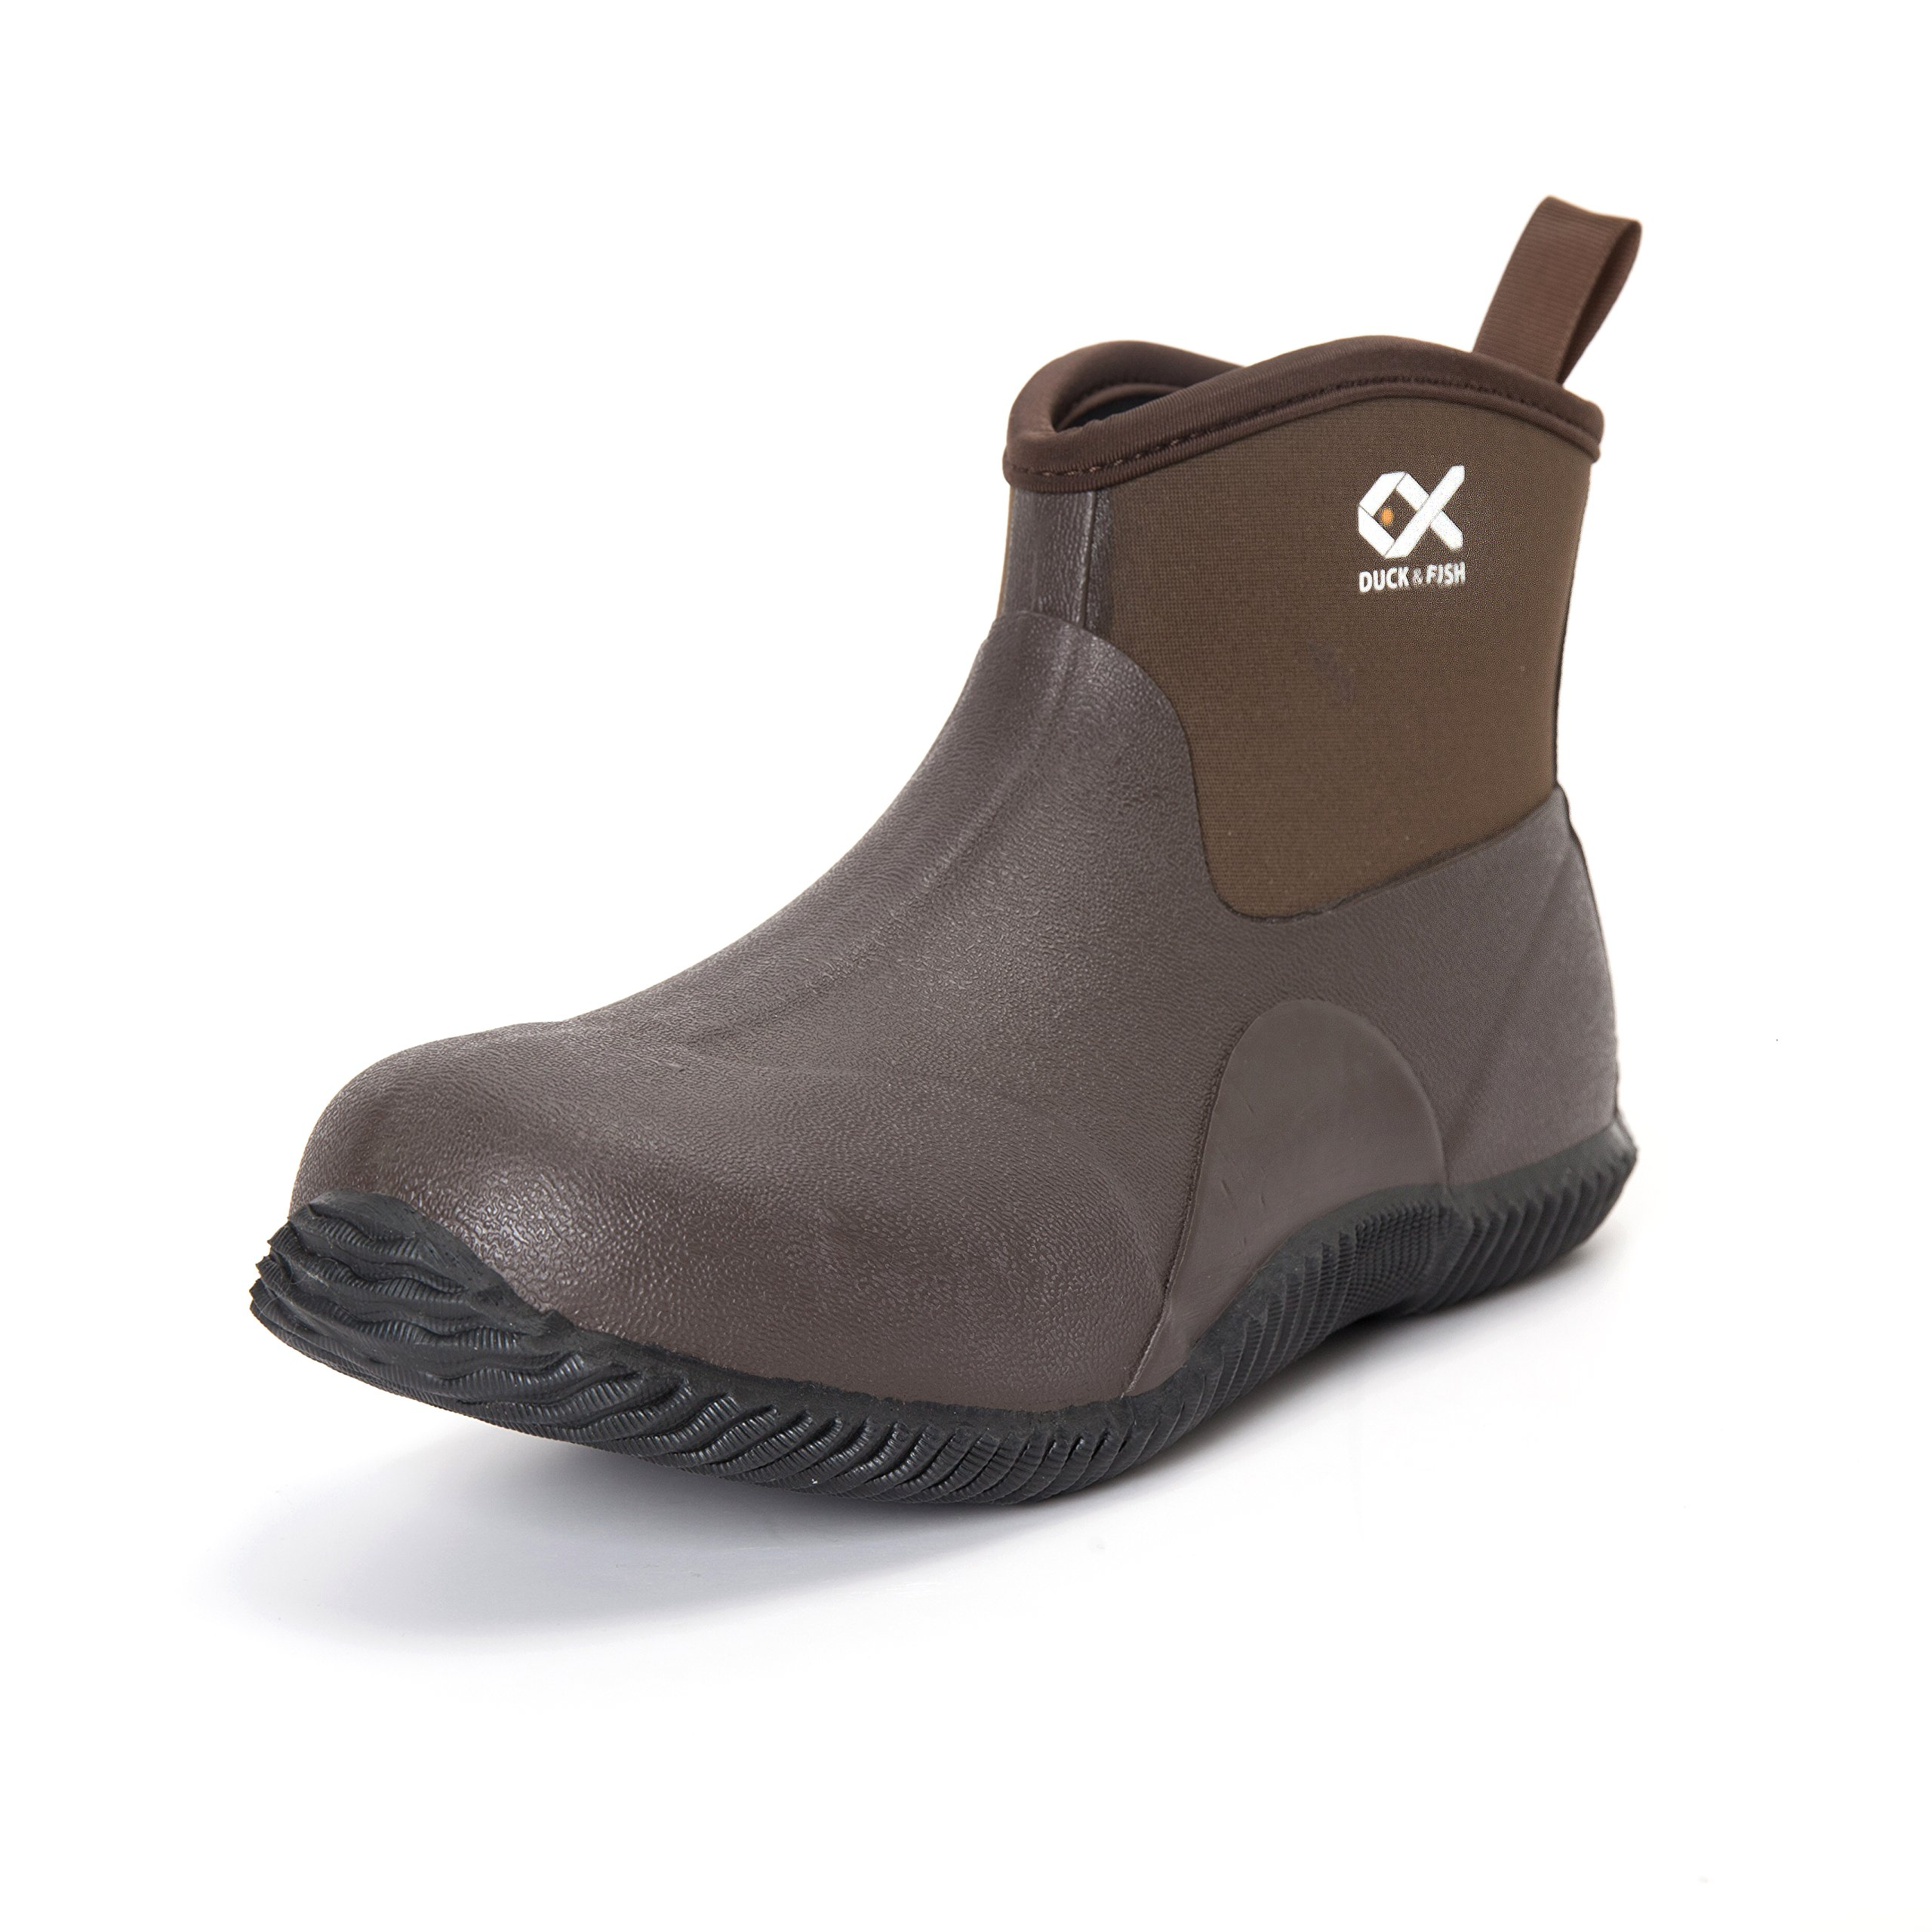 Duck and Fish Neoprene Ankle Hunting Work Shoe (10 US)